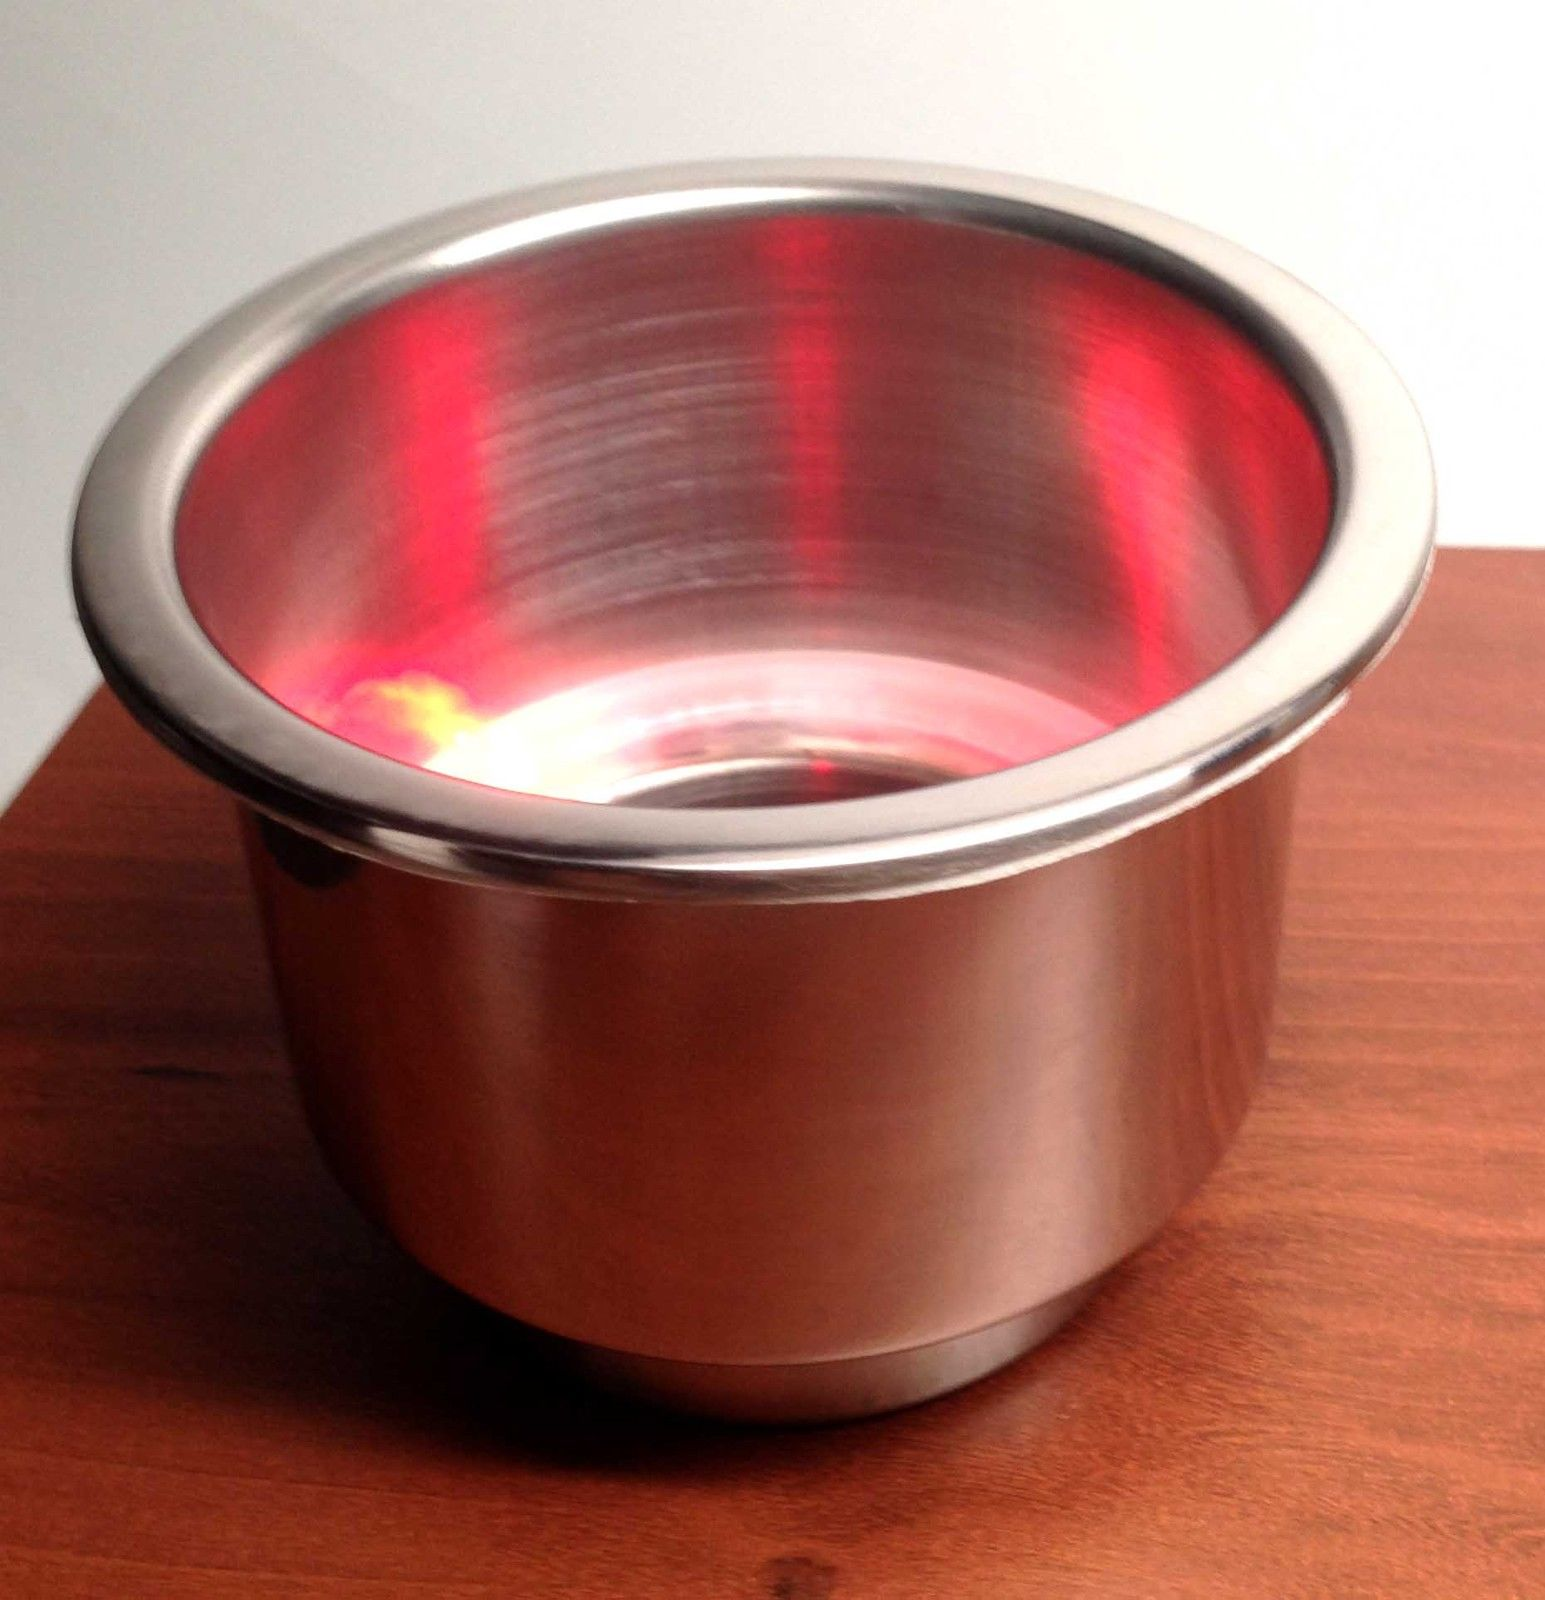 MARINE BOAT STAINLESS STEEL 304 LED RED CAN DRINK HOLDER RV CAMP